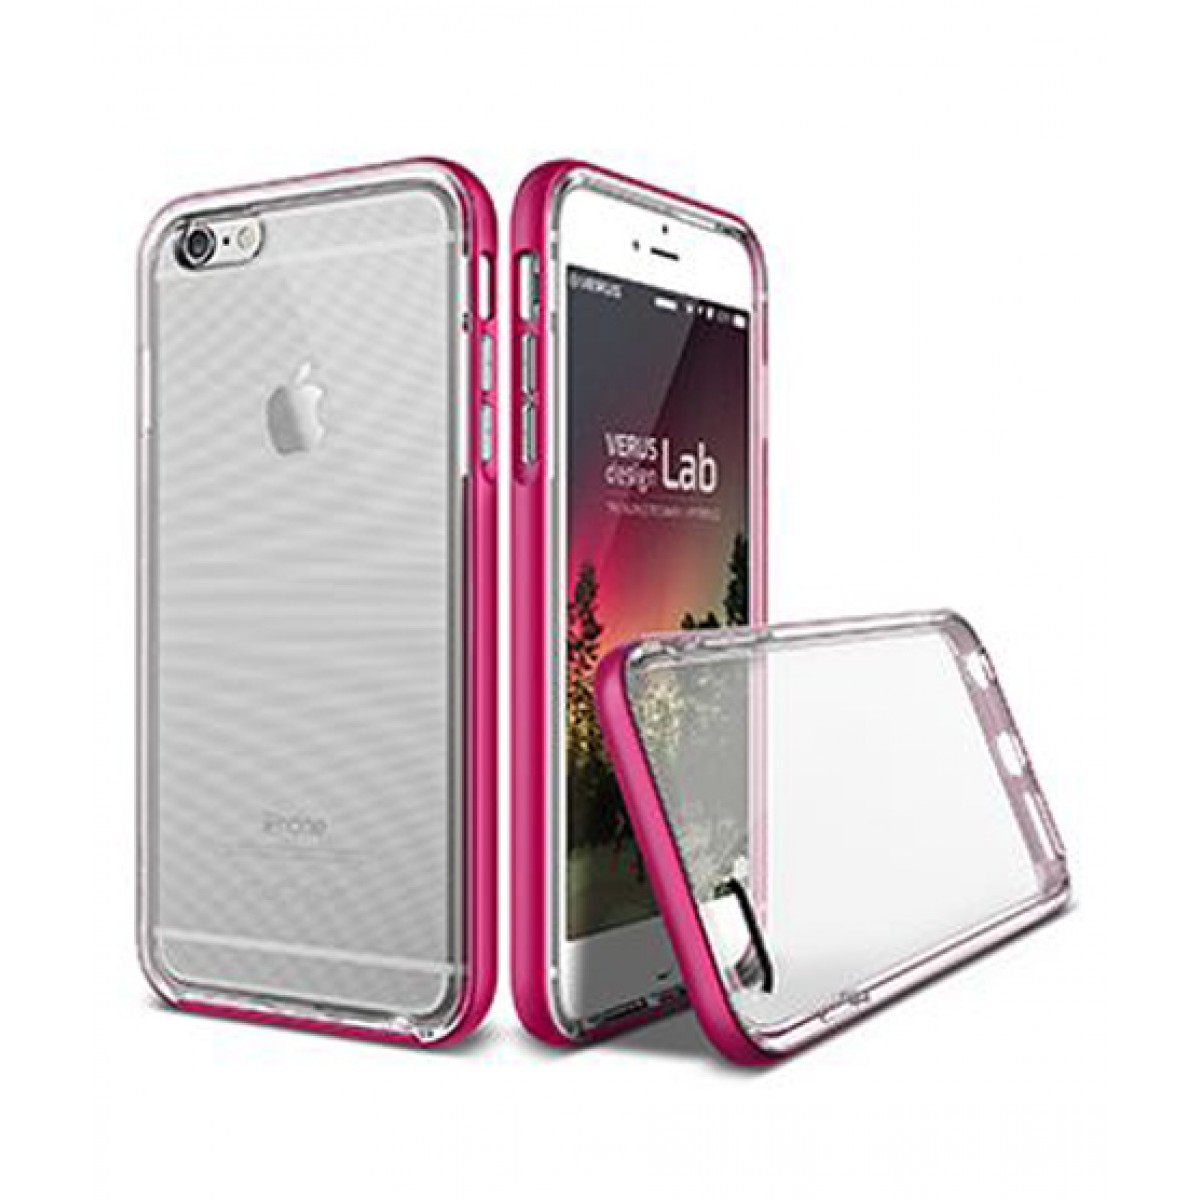 info for 43e8b b3a9e Verus Crystal Bumper Pink Case for iPhone 6/6s